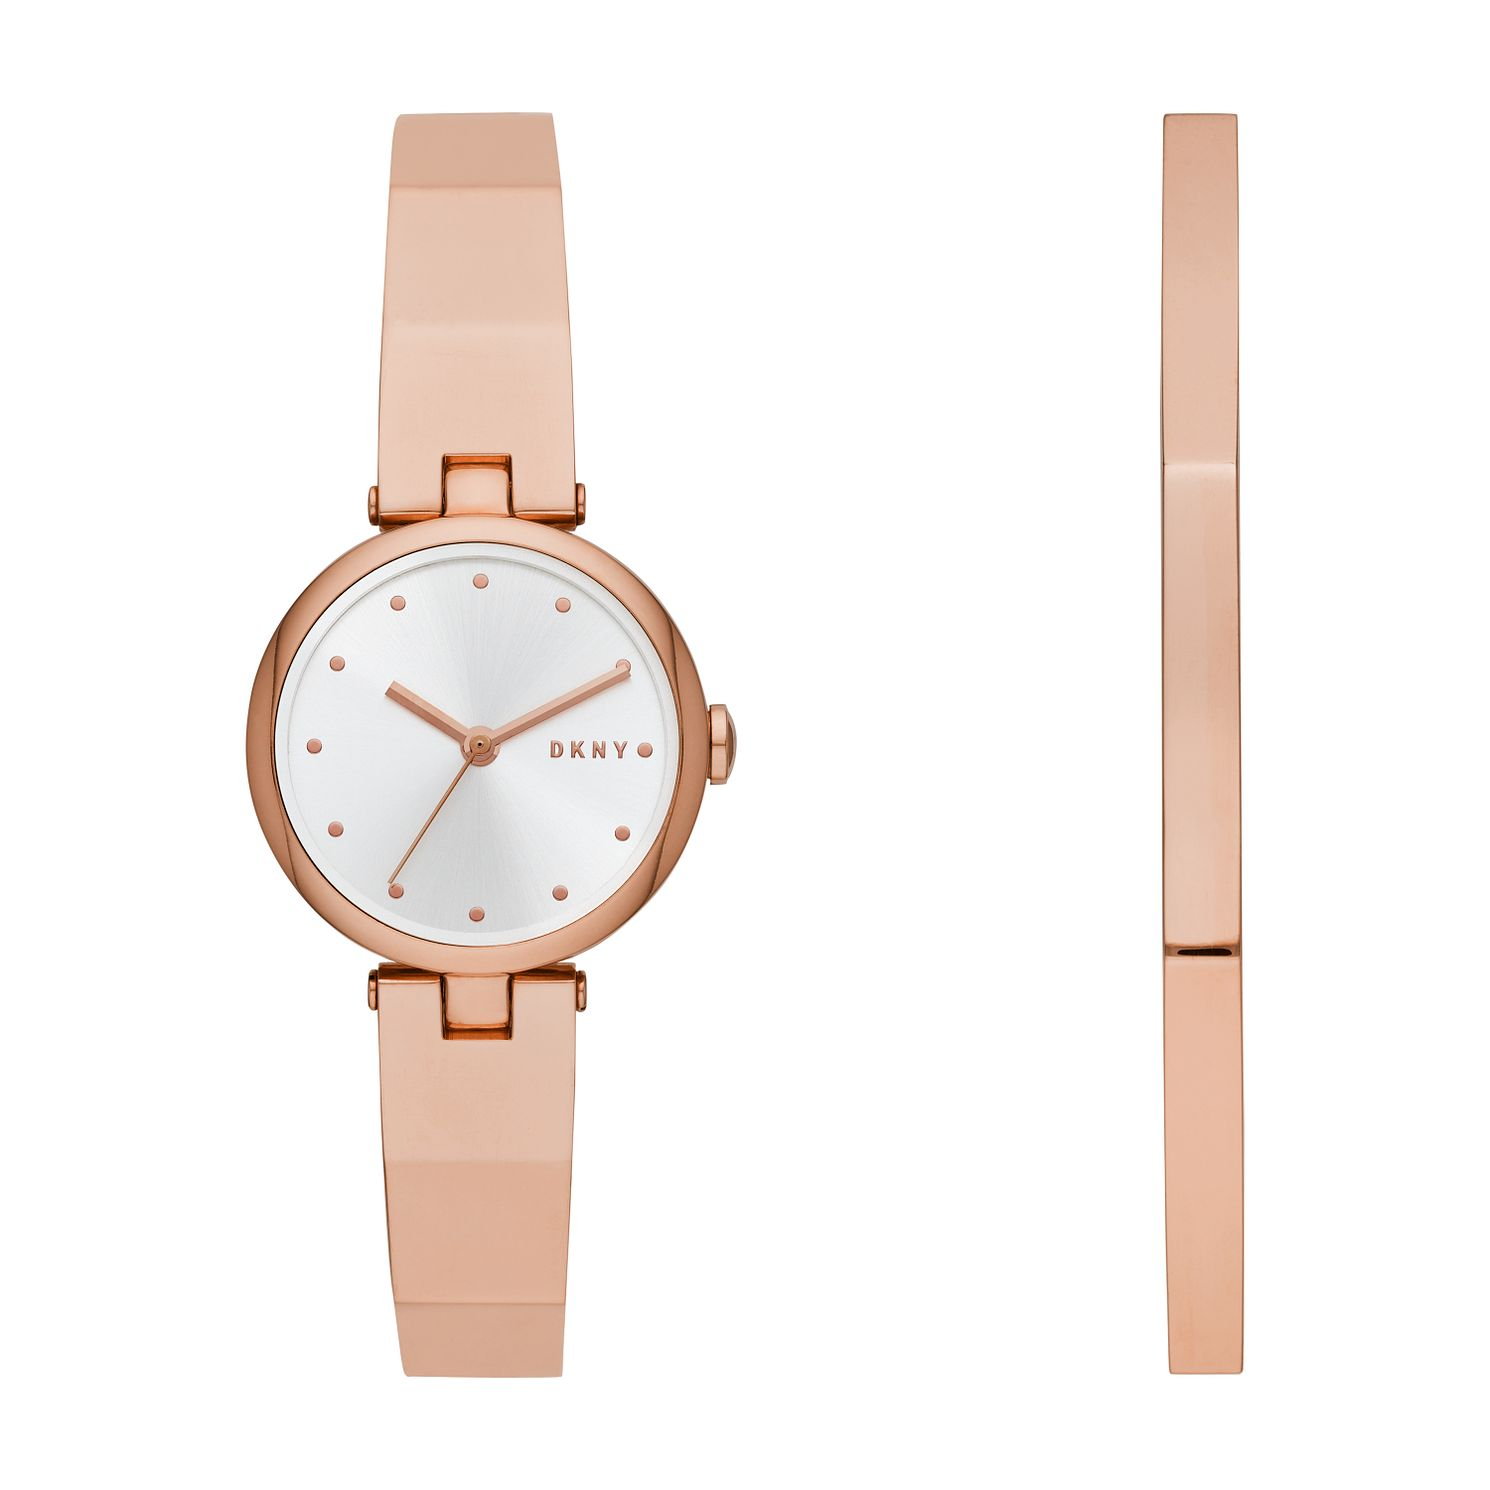 DKNY Eastside Ladies' Rose Gold Tone Watch & Bangle Set - Product number 3109135